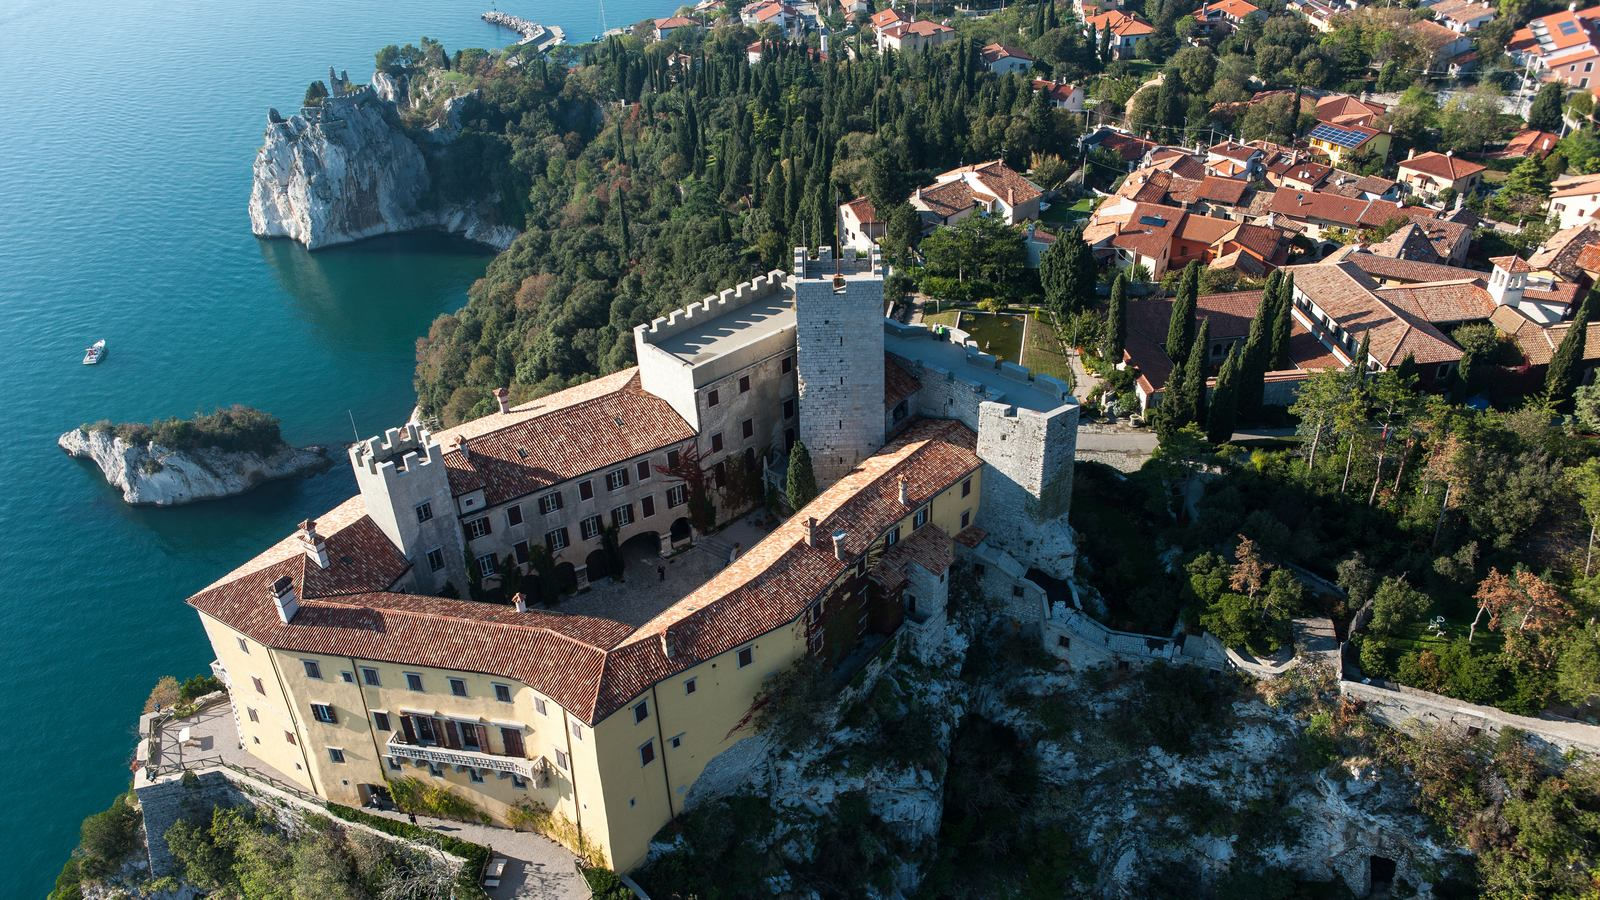 View of Duino Castle